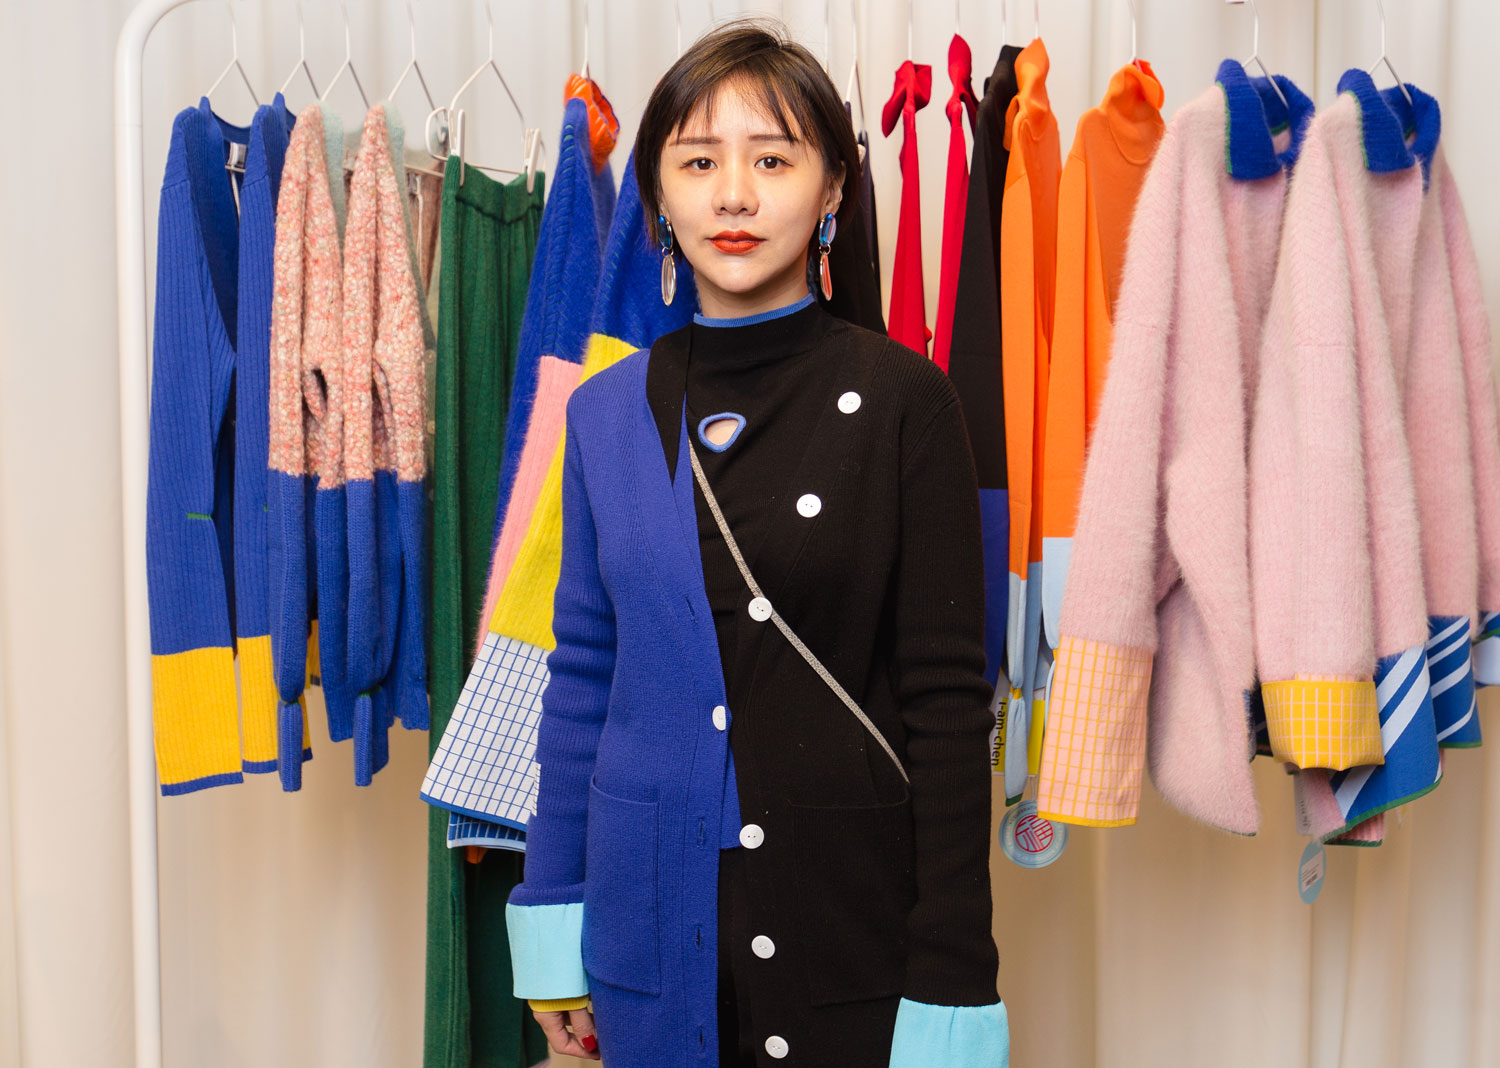 Leading Fashion Designer Susie Bubble Is Celebrating China At Bicester Village 4